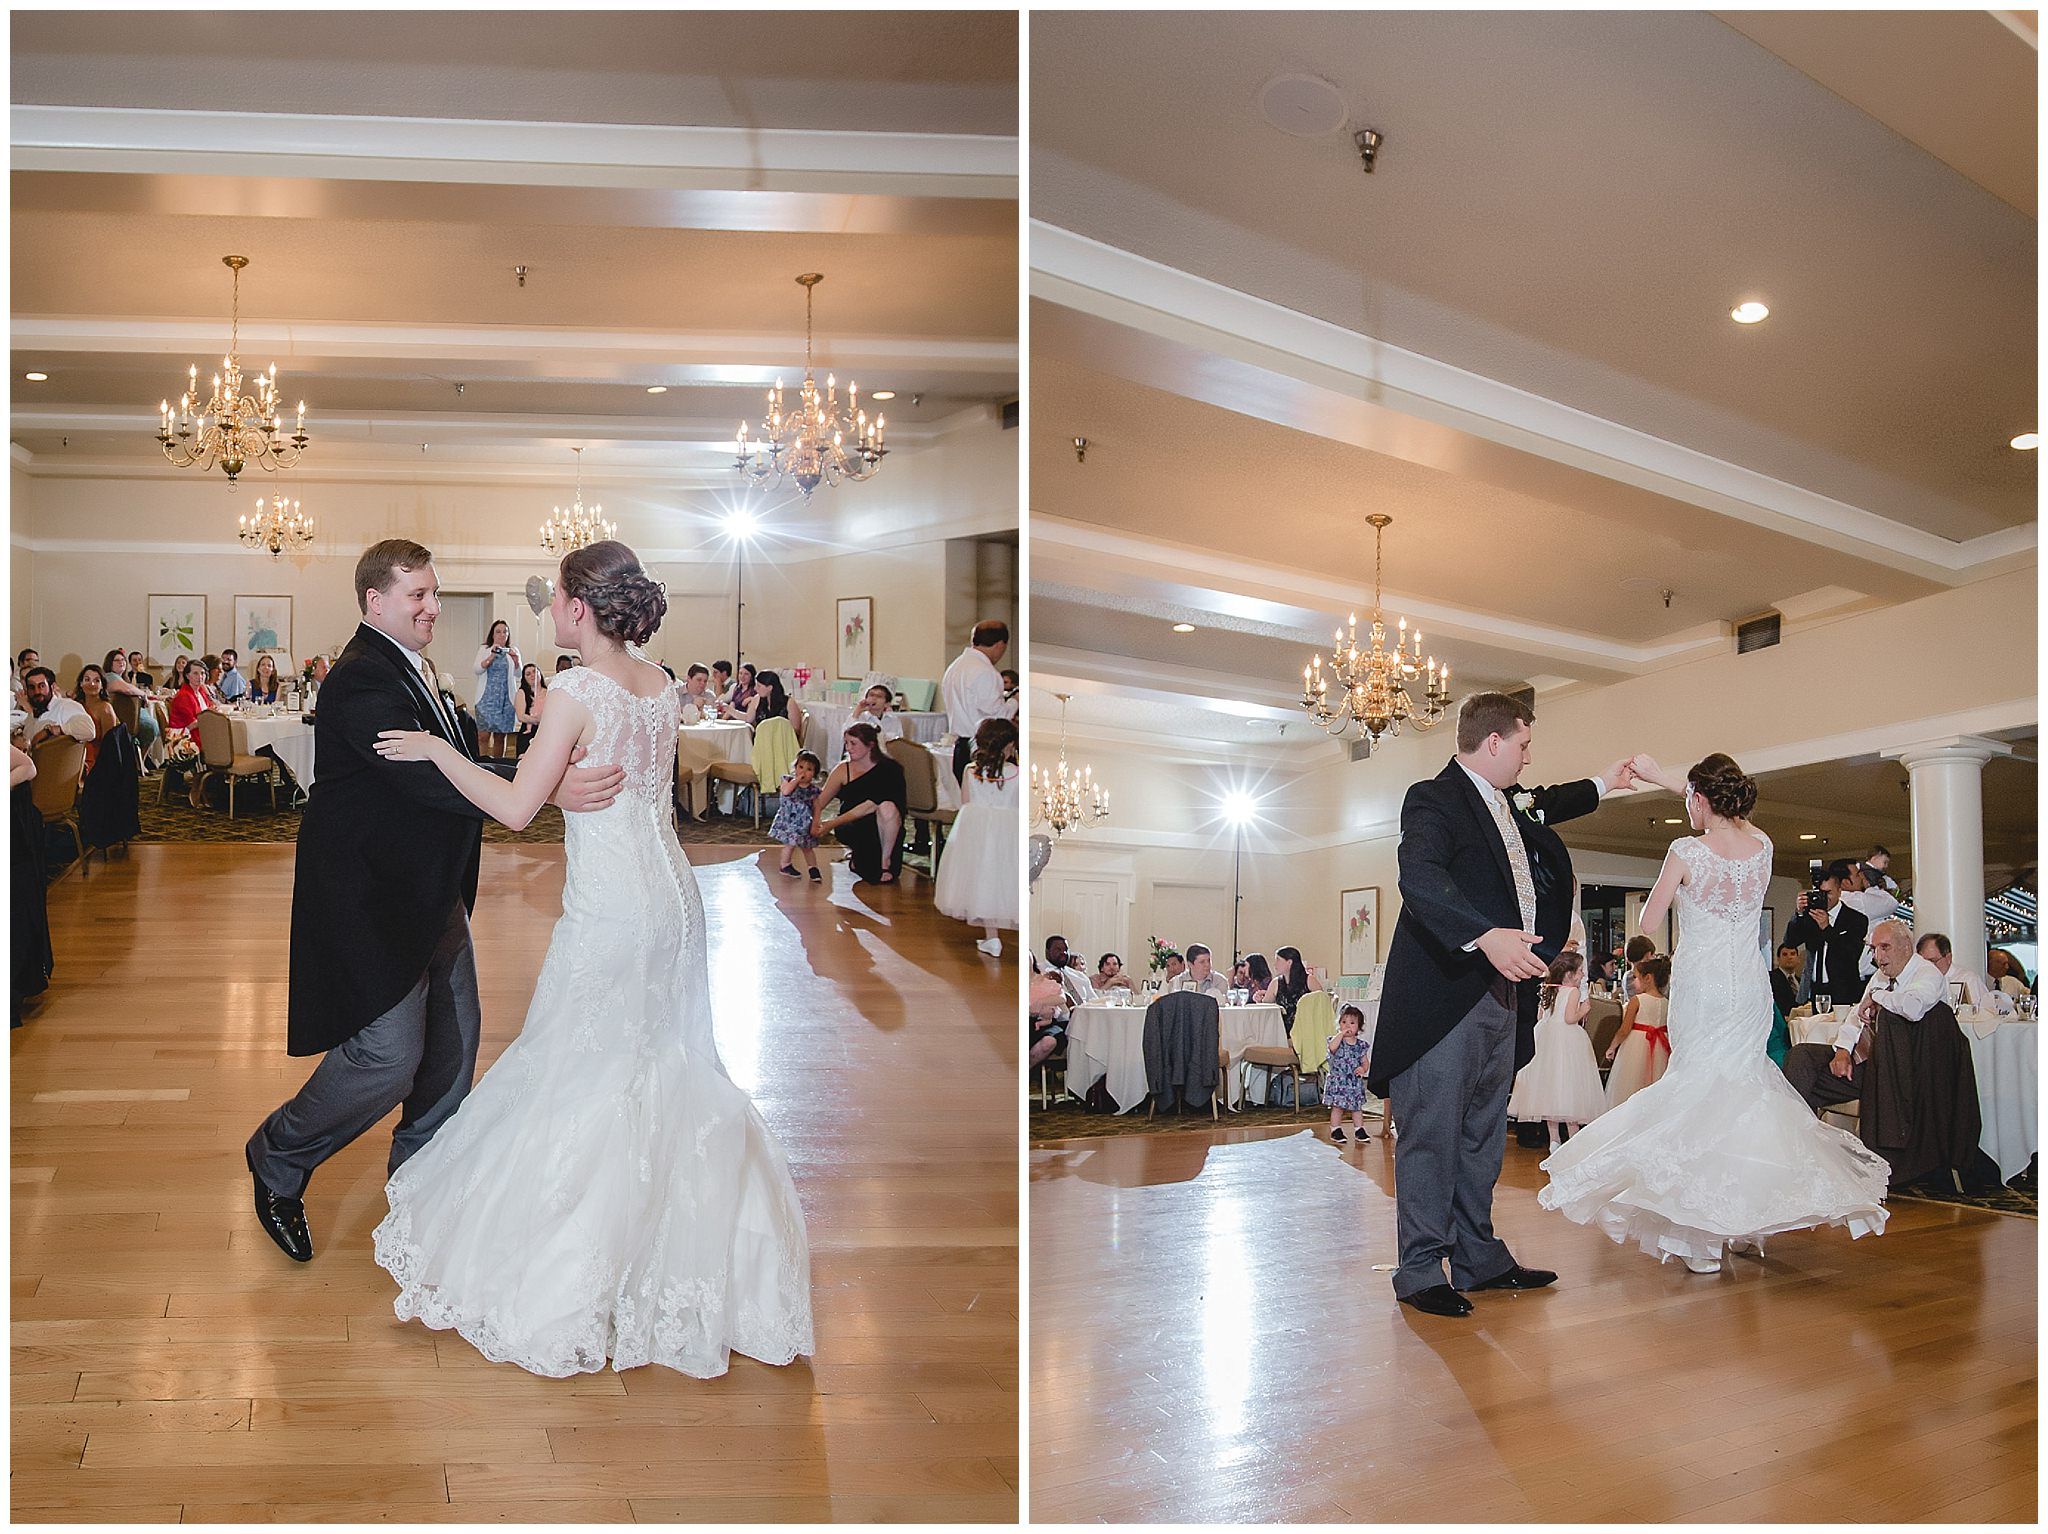 Bride & groom's first dance at Shannopin Country Club wedding reception